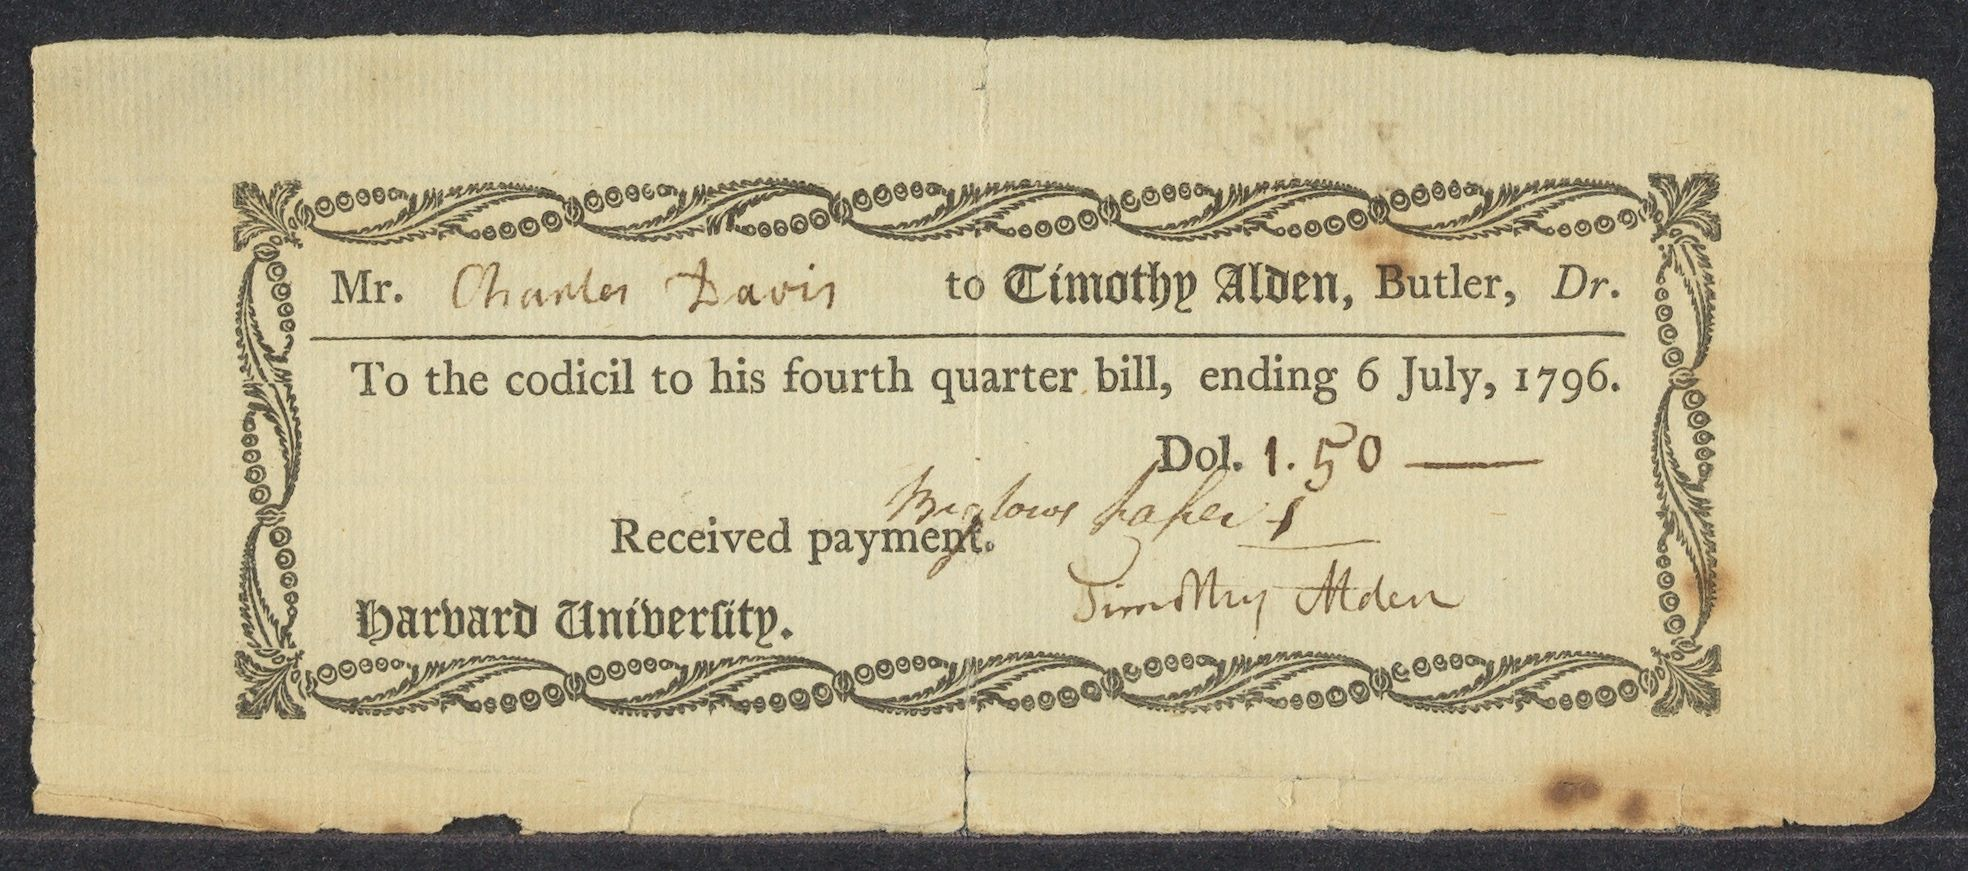 Collection of Harvard College quarter bill and butler's bills sent to Charles Davis, 1793-1796